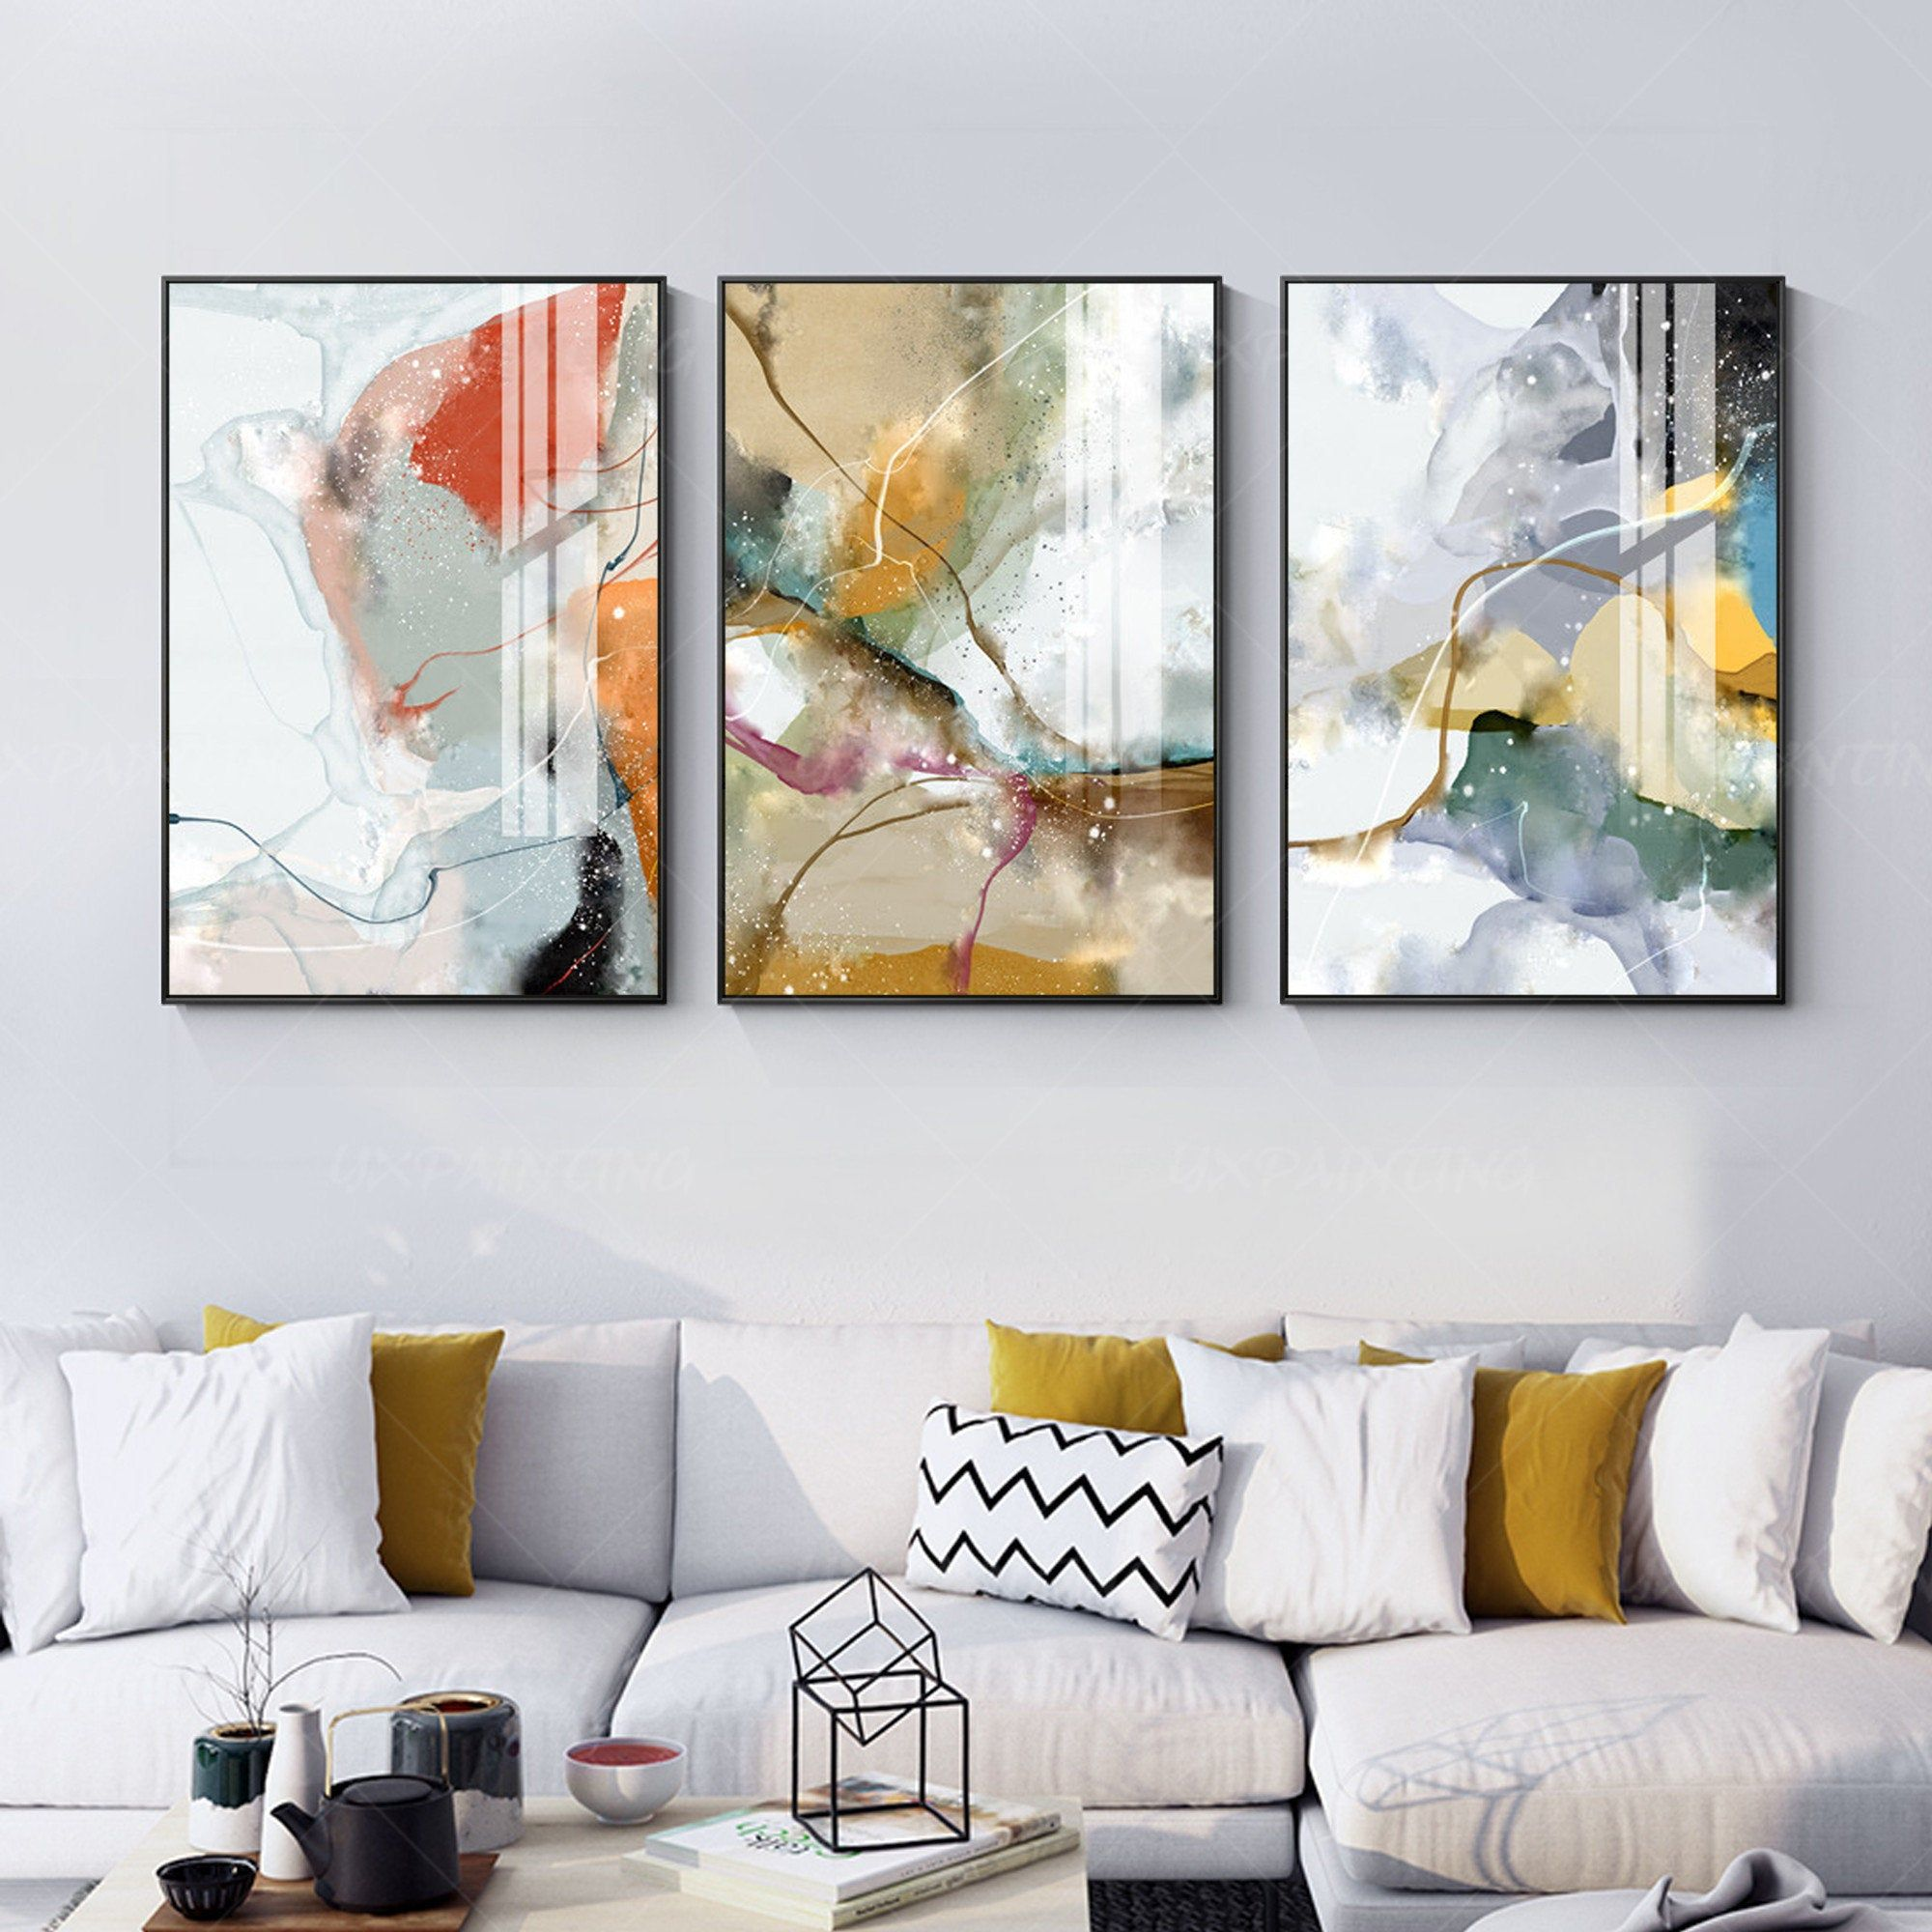 Framed Painting Set Of 3 Wall Art Abstract Print Art Etsy Abstract Wall Painting Painting Frames Wall Decor Living Room